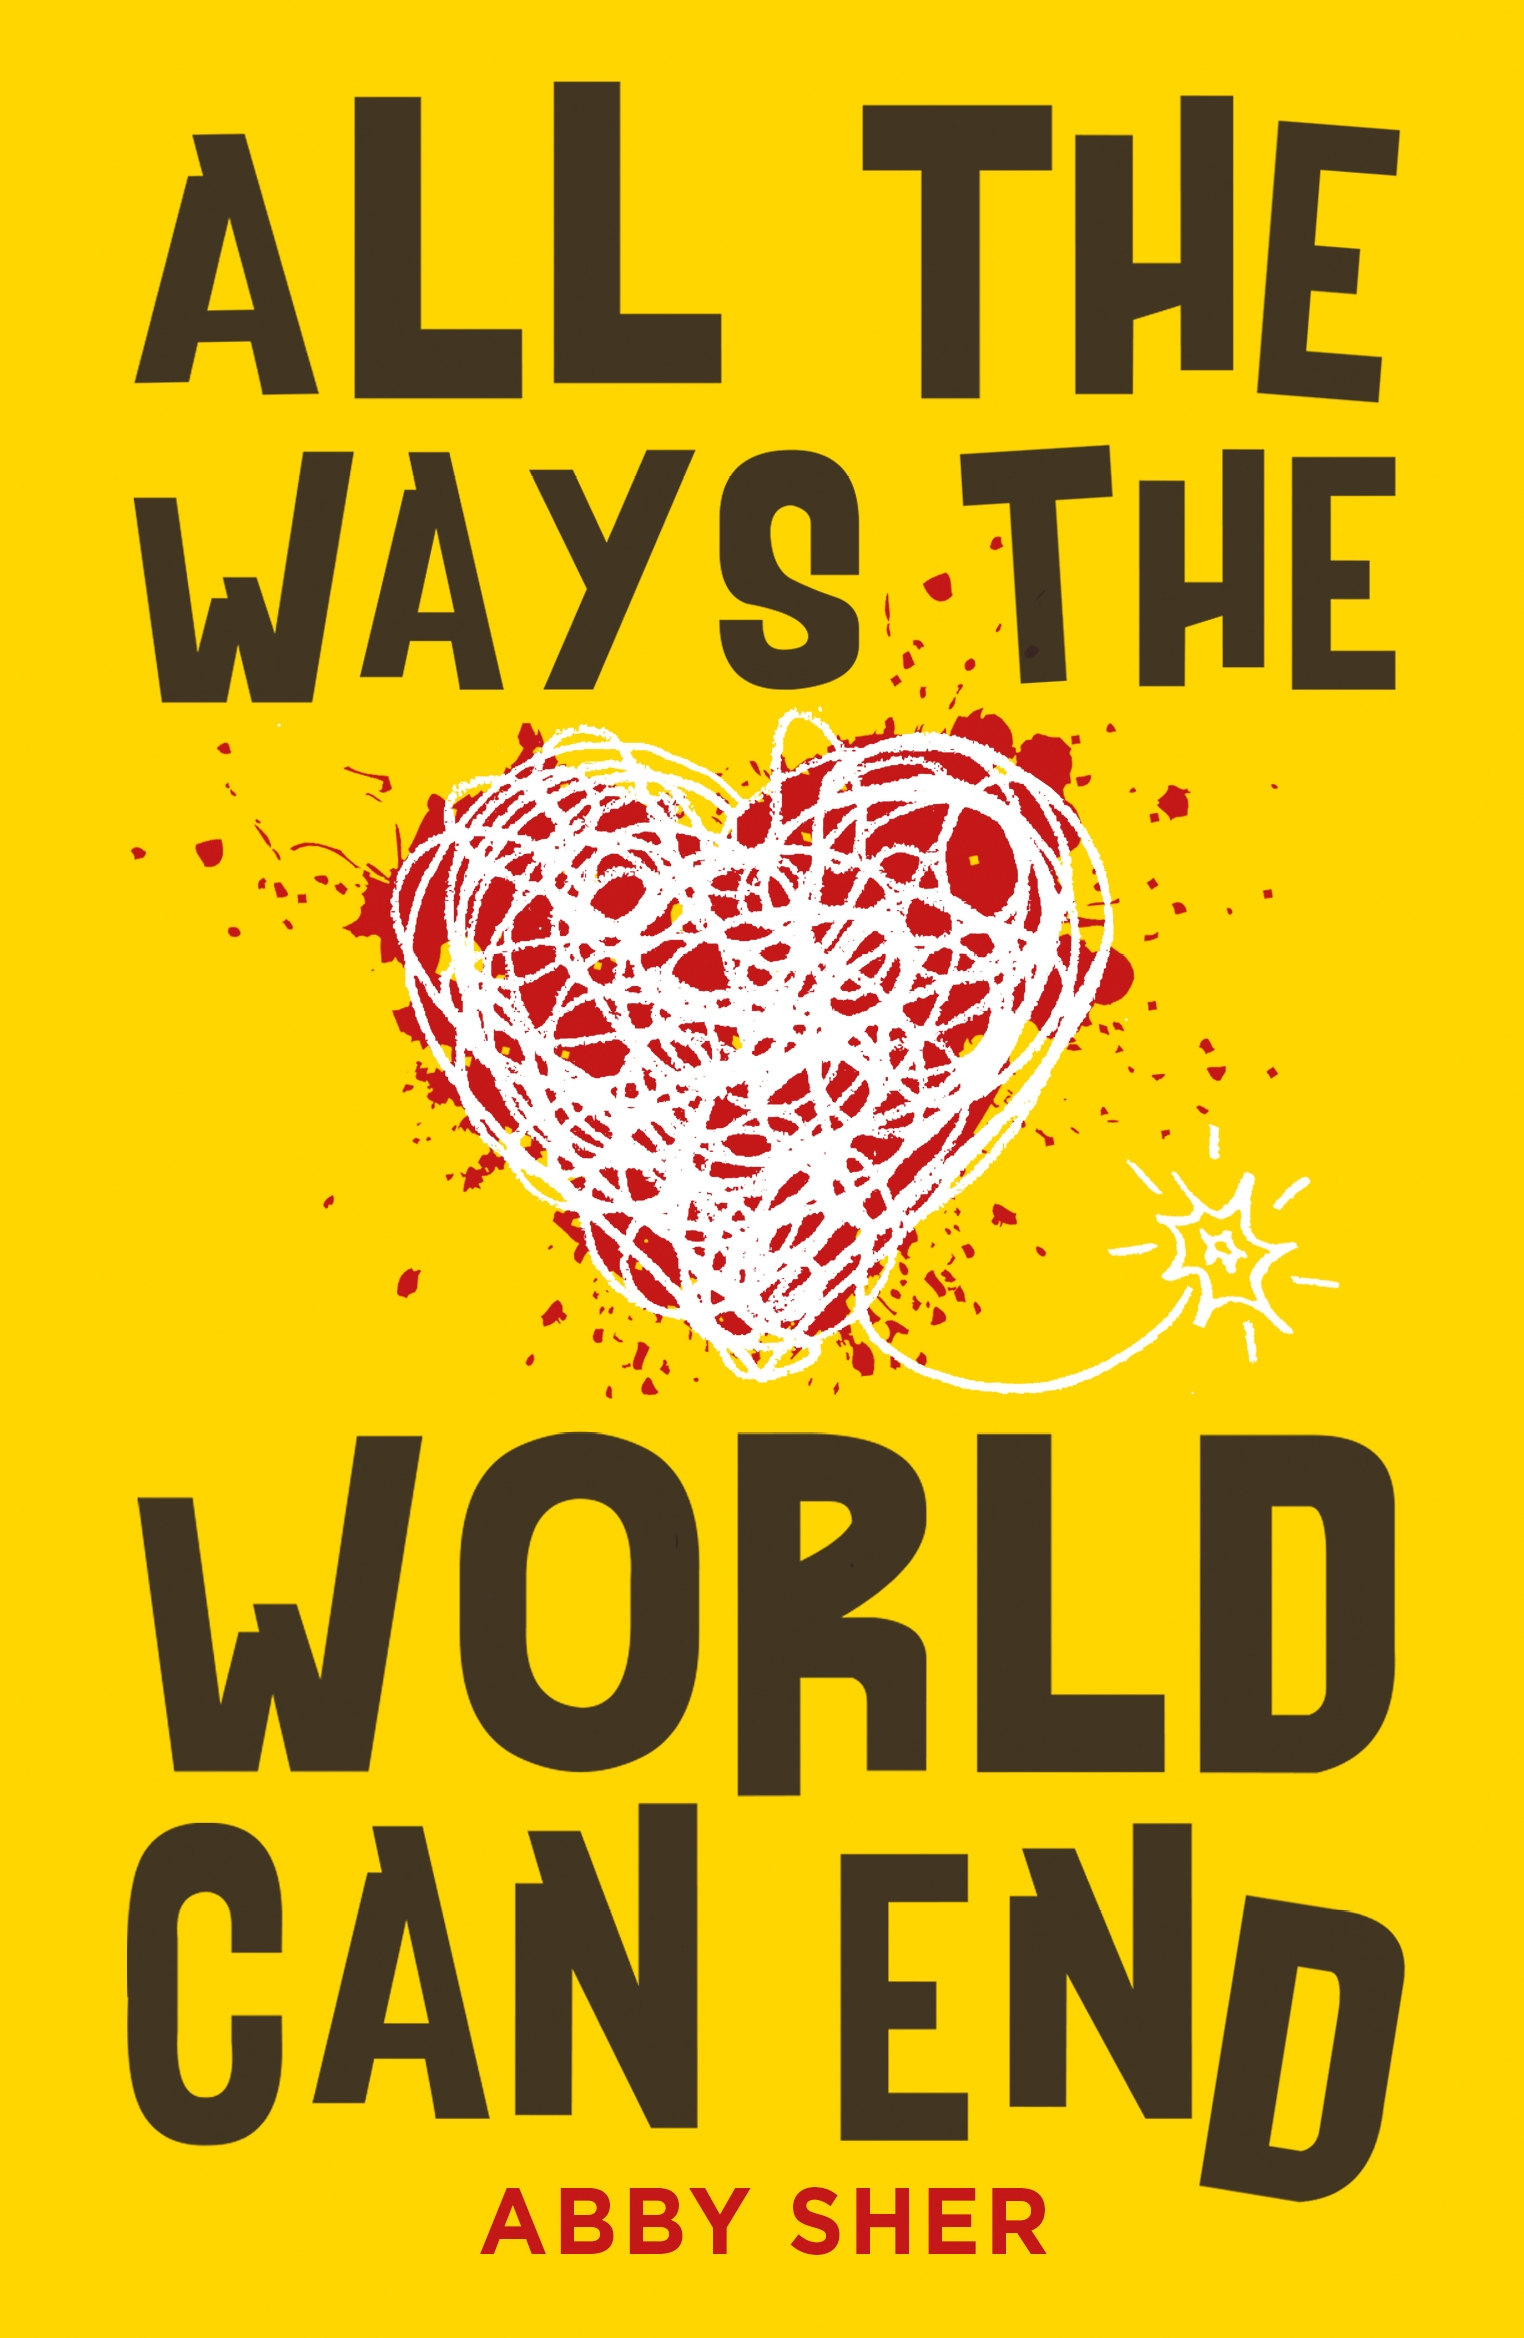 All the Ways the World Can End by Abby Sher